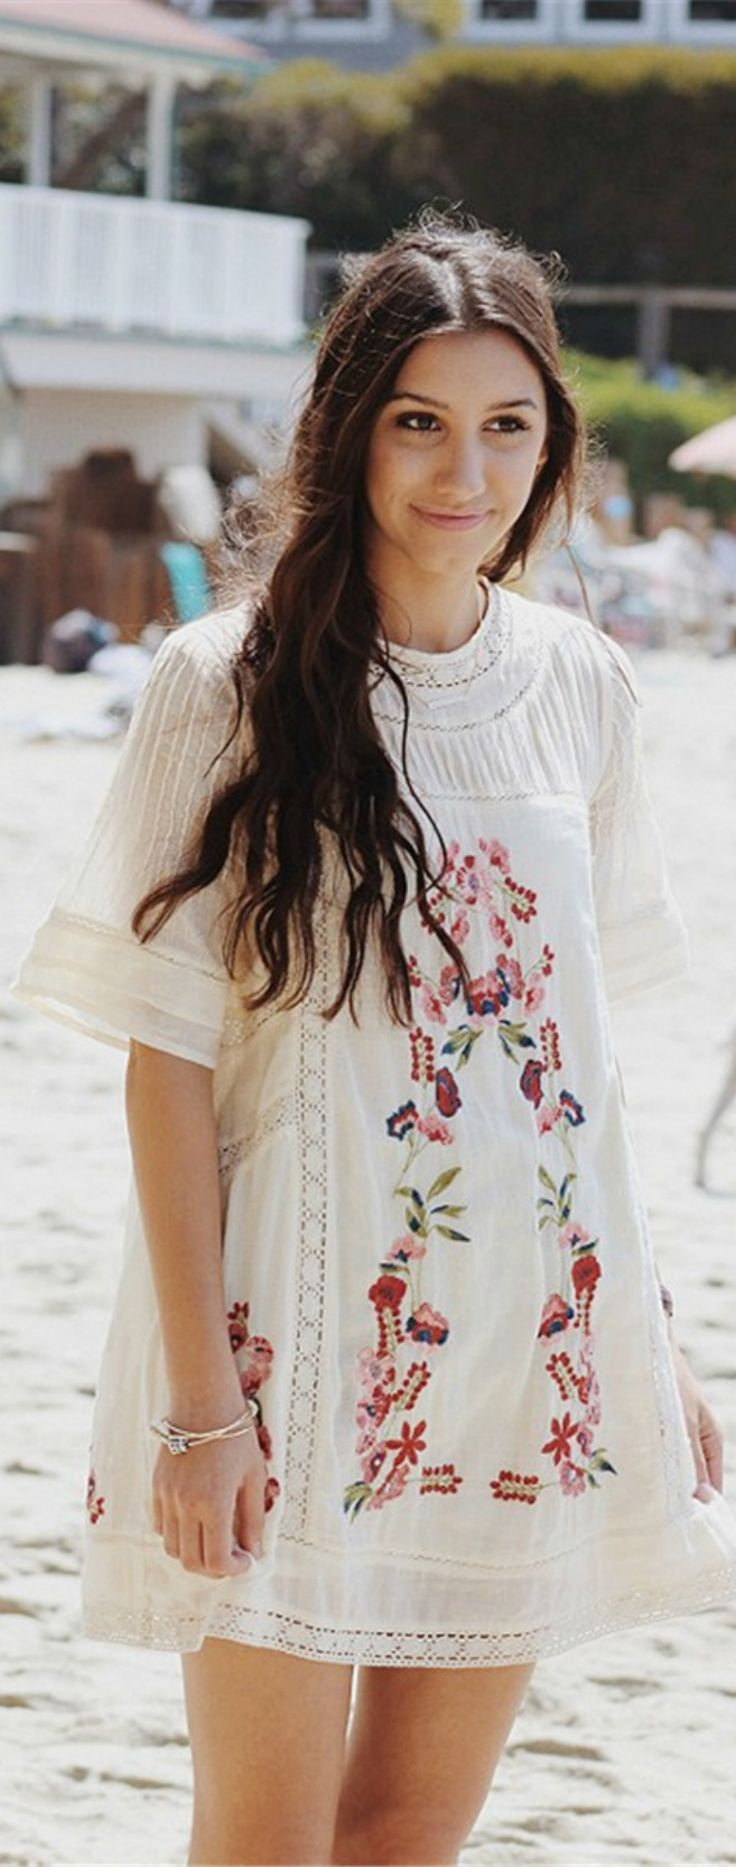 A Floral Embroidery Dress is now available at $45 from Pasaboho. This dress exhibit brilliant design with unique embroidered patterns. ❤️ boho dress :: gypsy style :: hippie chic :: outfit ideas :: boho clothing :: free spirit :: fashion trend :: embroidered :: flowers :: floral :: summer :: fabulous :: love :: street style :: fashion style :: boho style :: bohemian :: modern vintage :: ethnic tribal :: embroidery dress :: skirt :: cardigans :: summer dress :: boho chic :: boho outfit